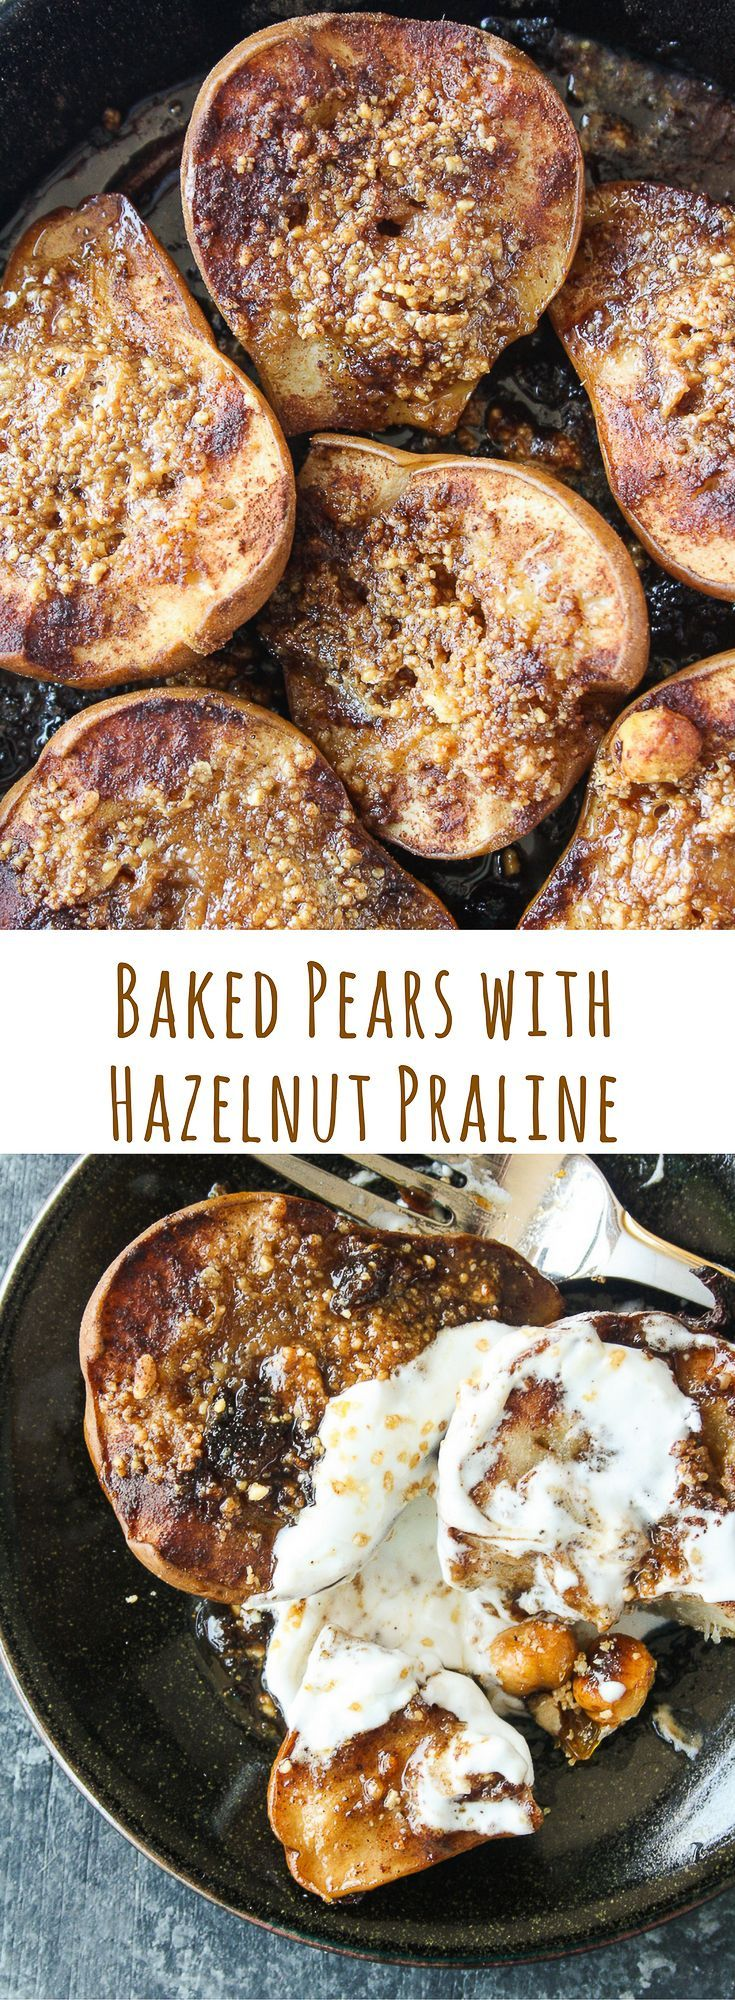 Soft, juicy, spiced baked pears stuffed with hazelnut praline and topped with cream!